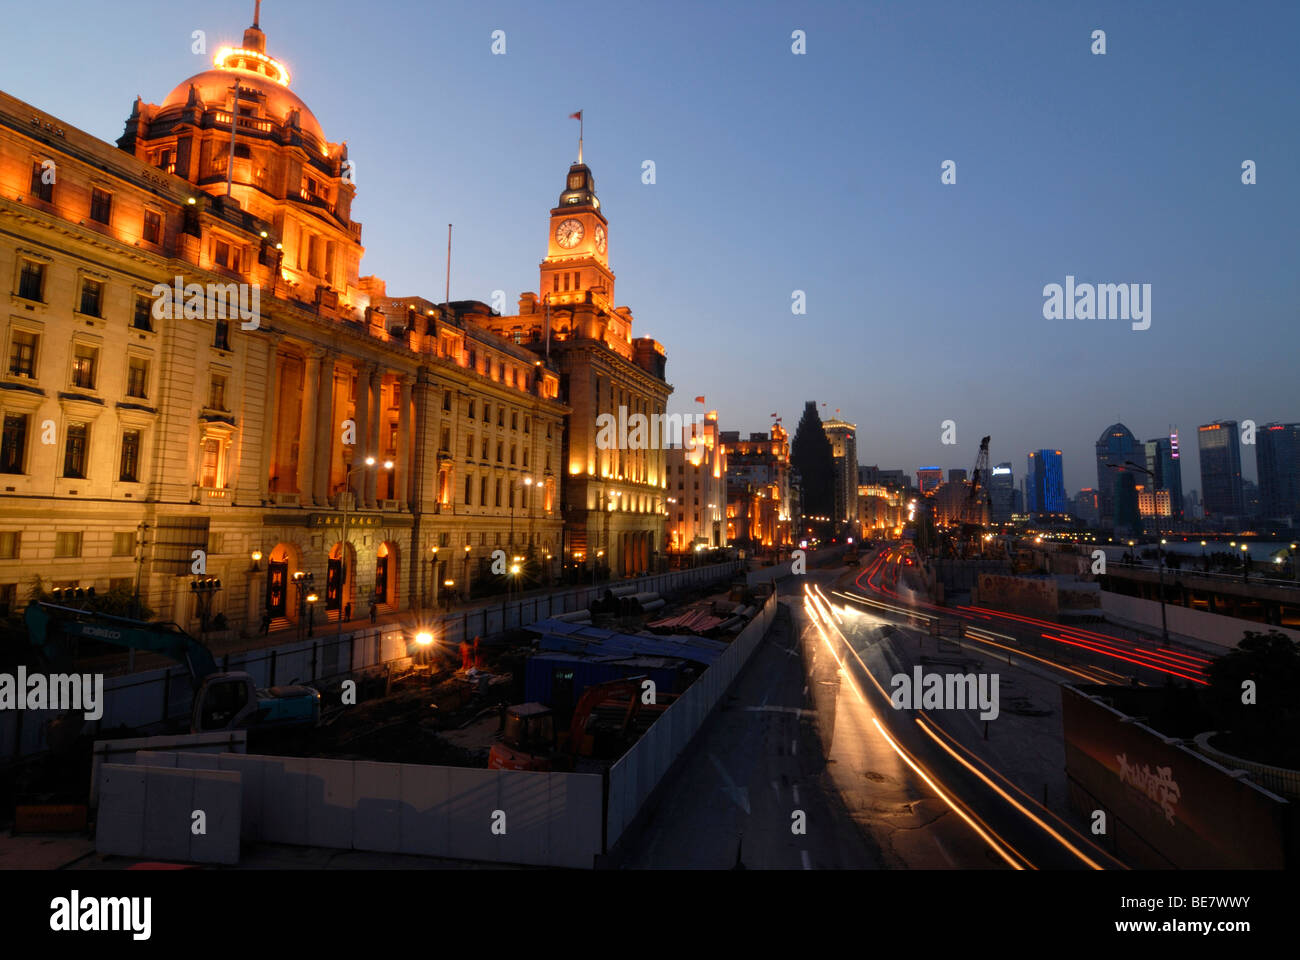 The illuminated Bund at night, the boulevard in Shanghai with the HSBC Building and China Merchants Bank Building, - Stock Image